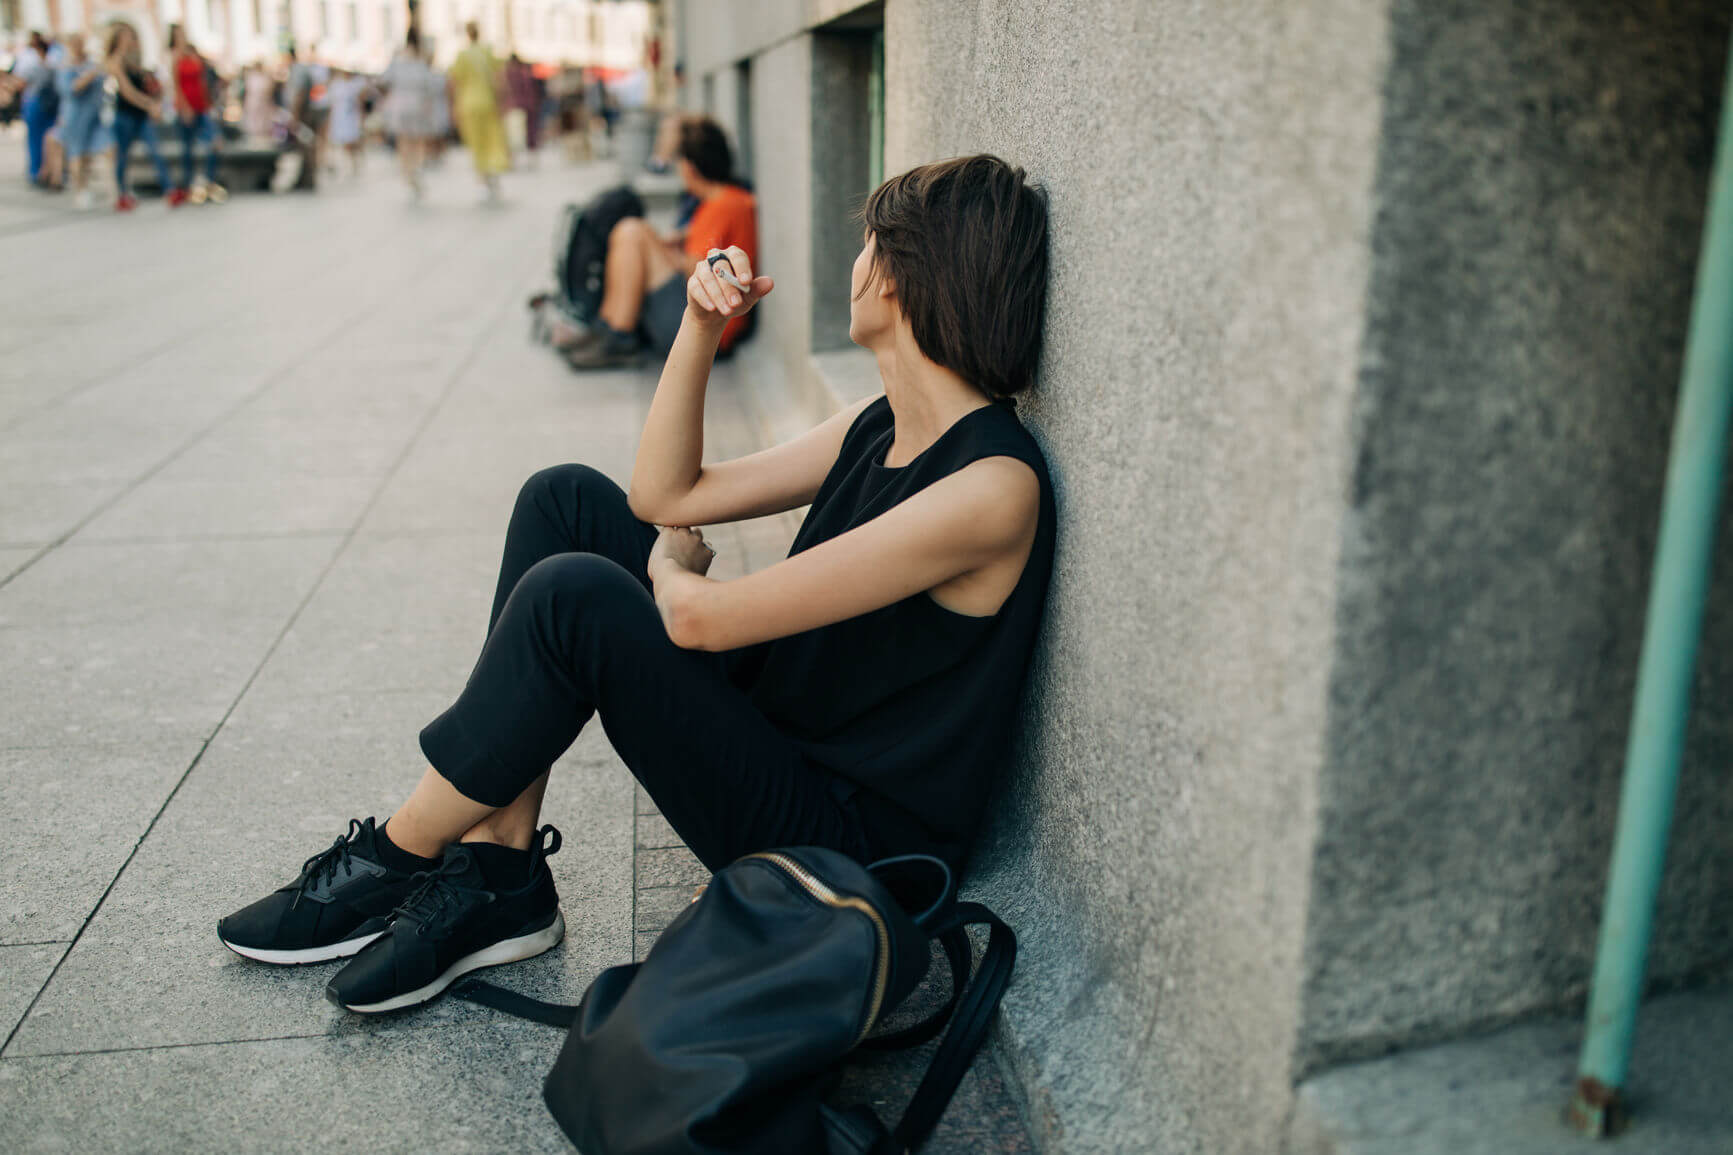 cigarette release stress/ smoke/Why Are LGBTQ+ People Are More Likely To Smoke?